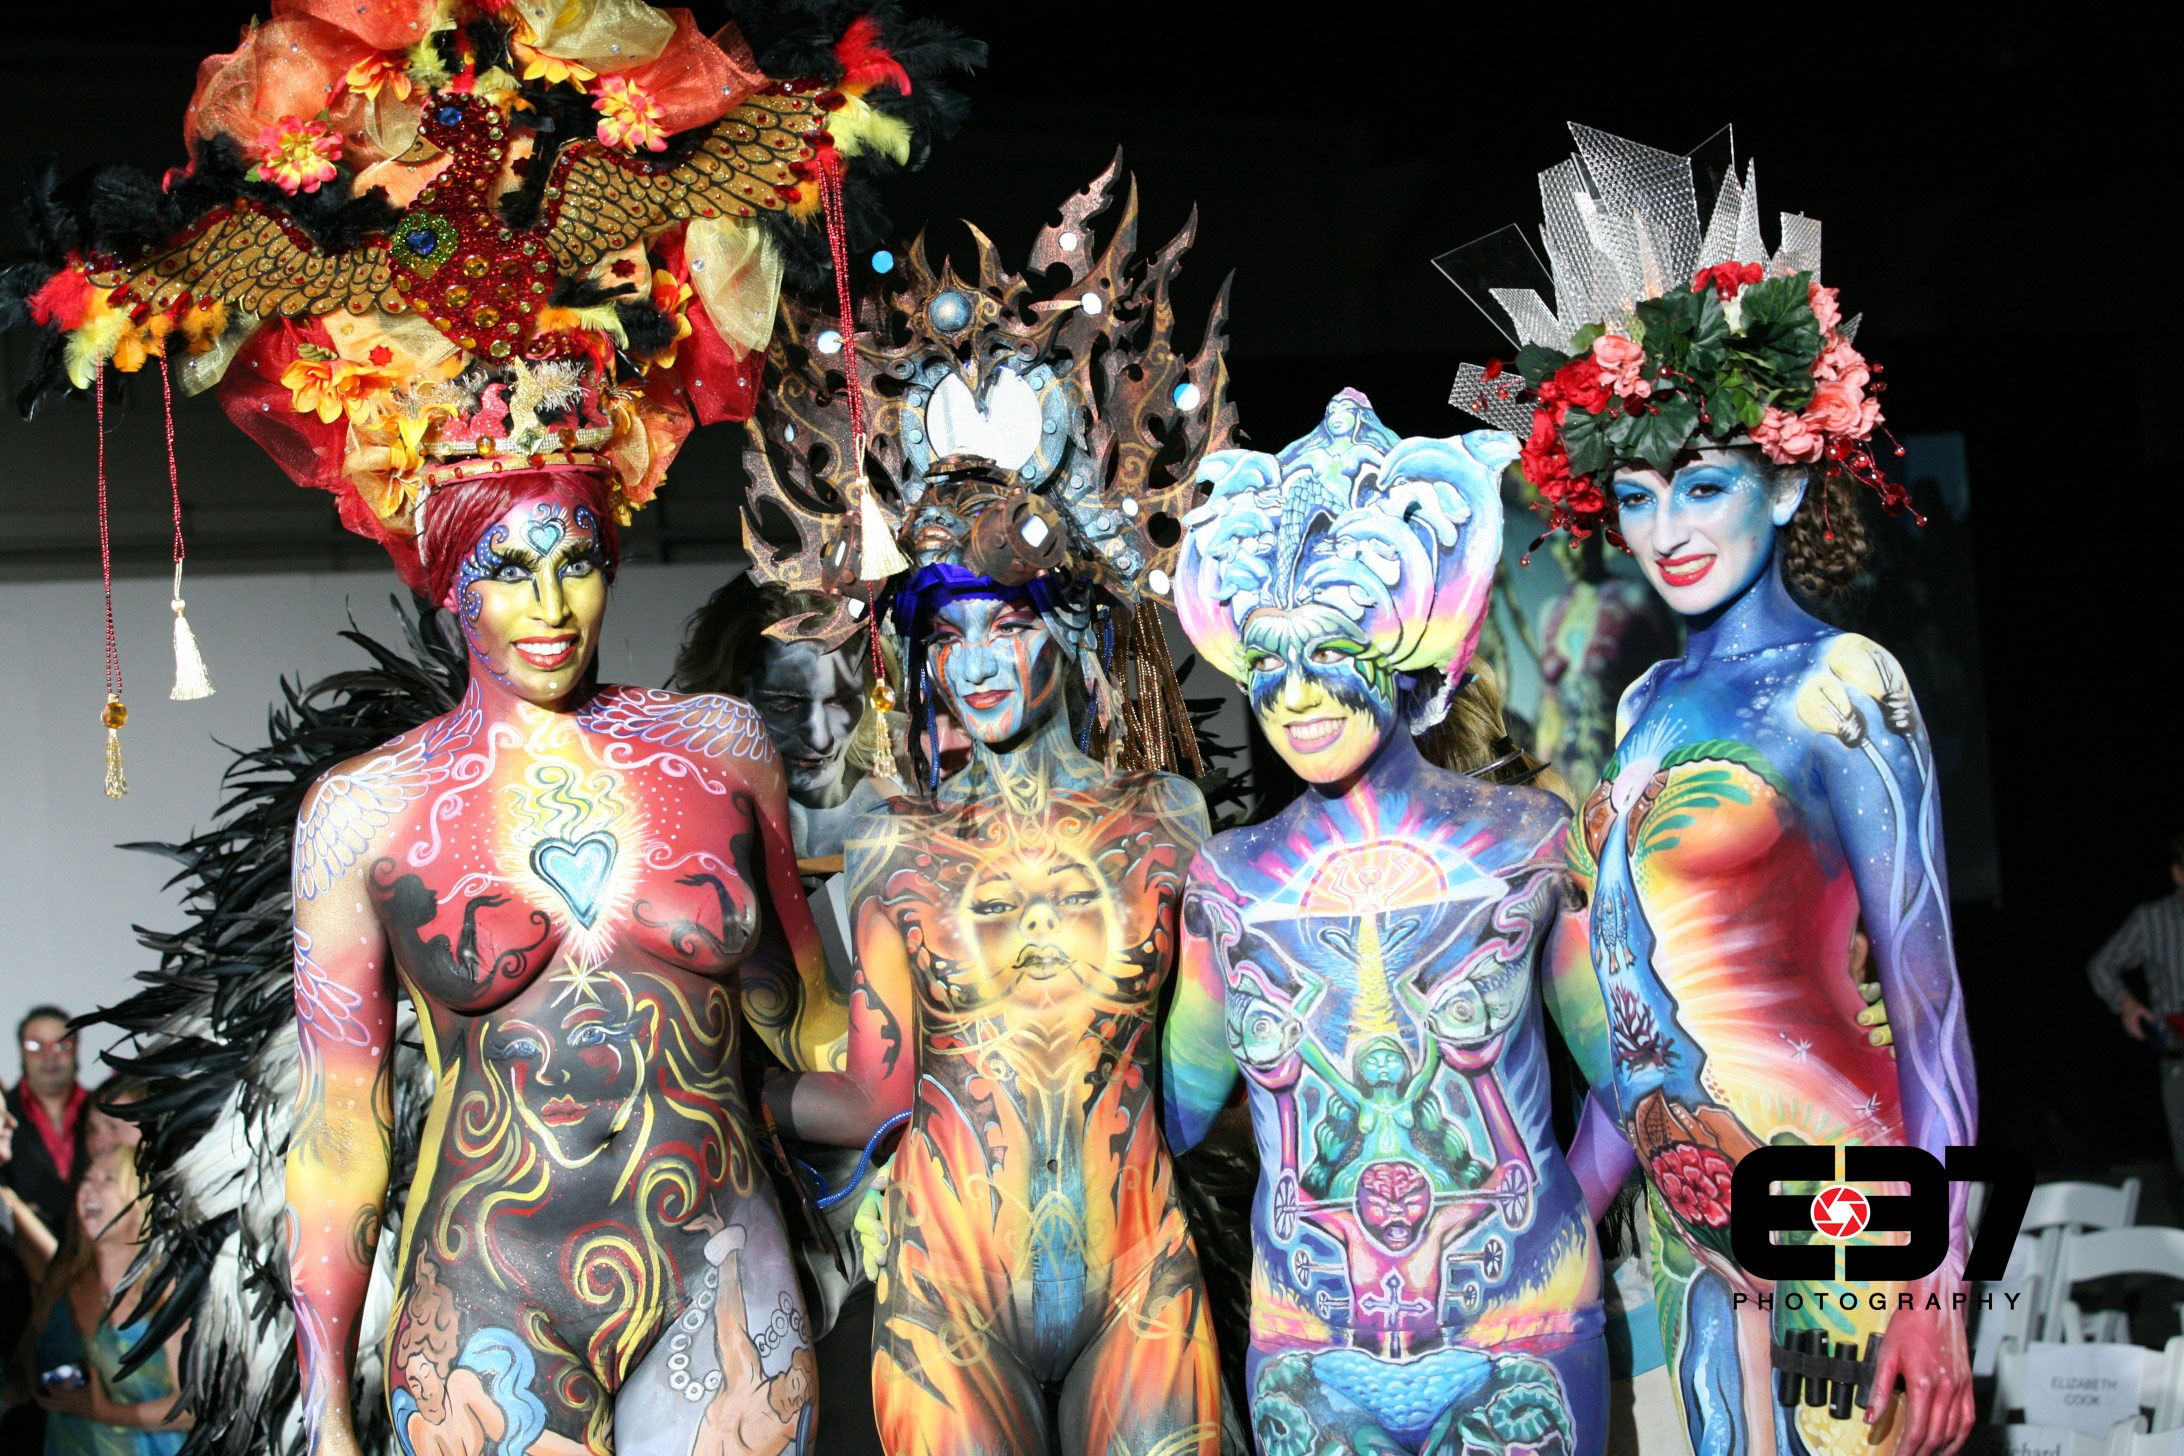 from Kyler girls in body painting contest